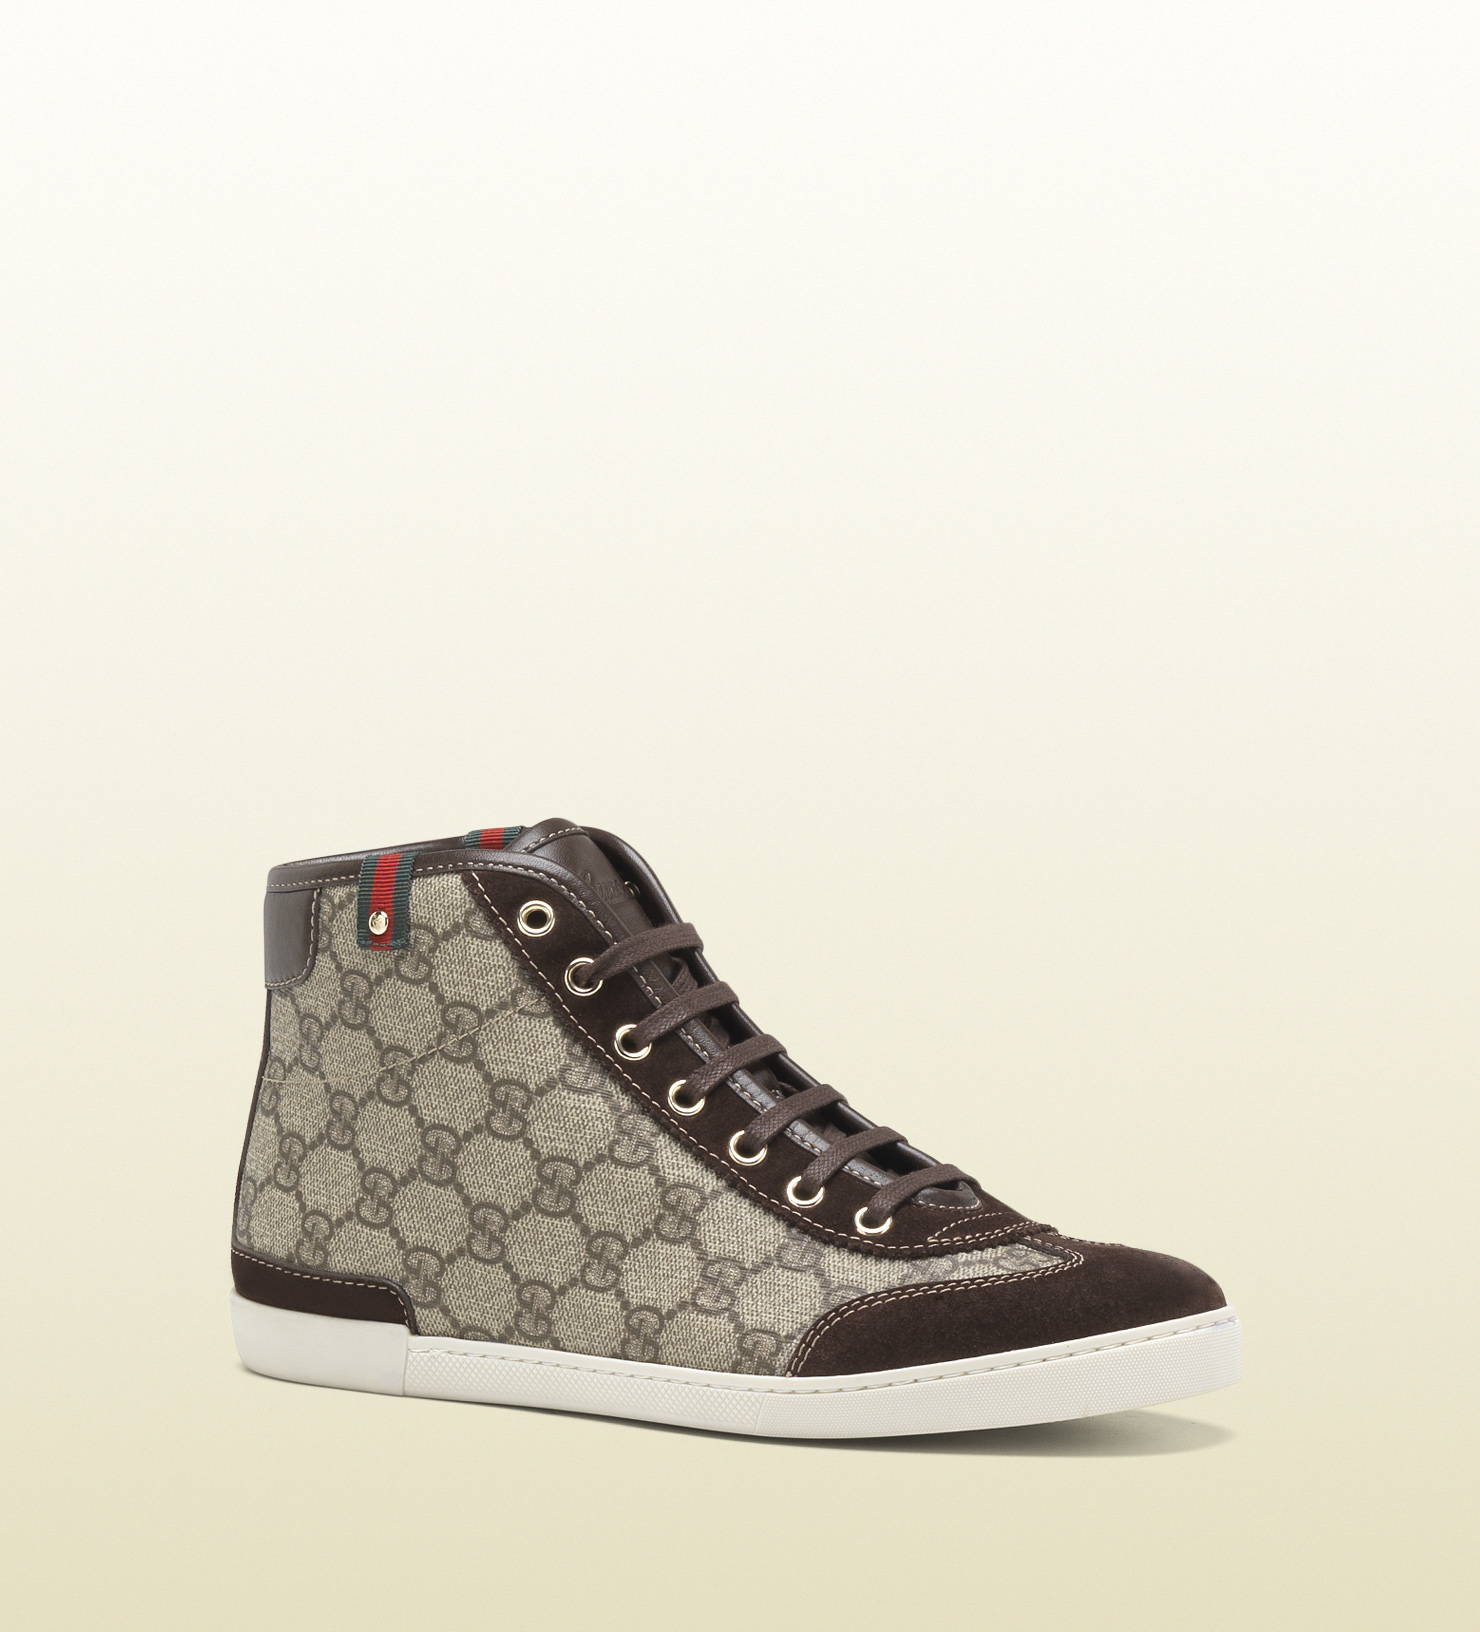 Gucci - barcelona mid-top lace-up sneaker 296568KGDO09762